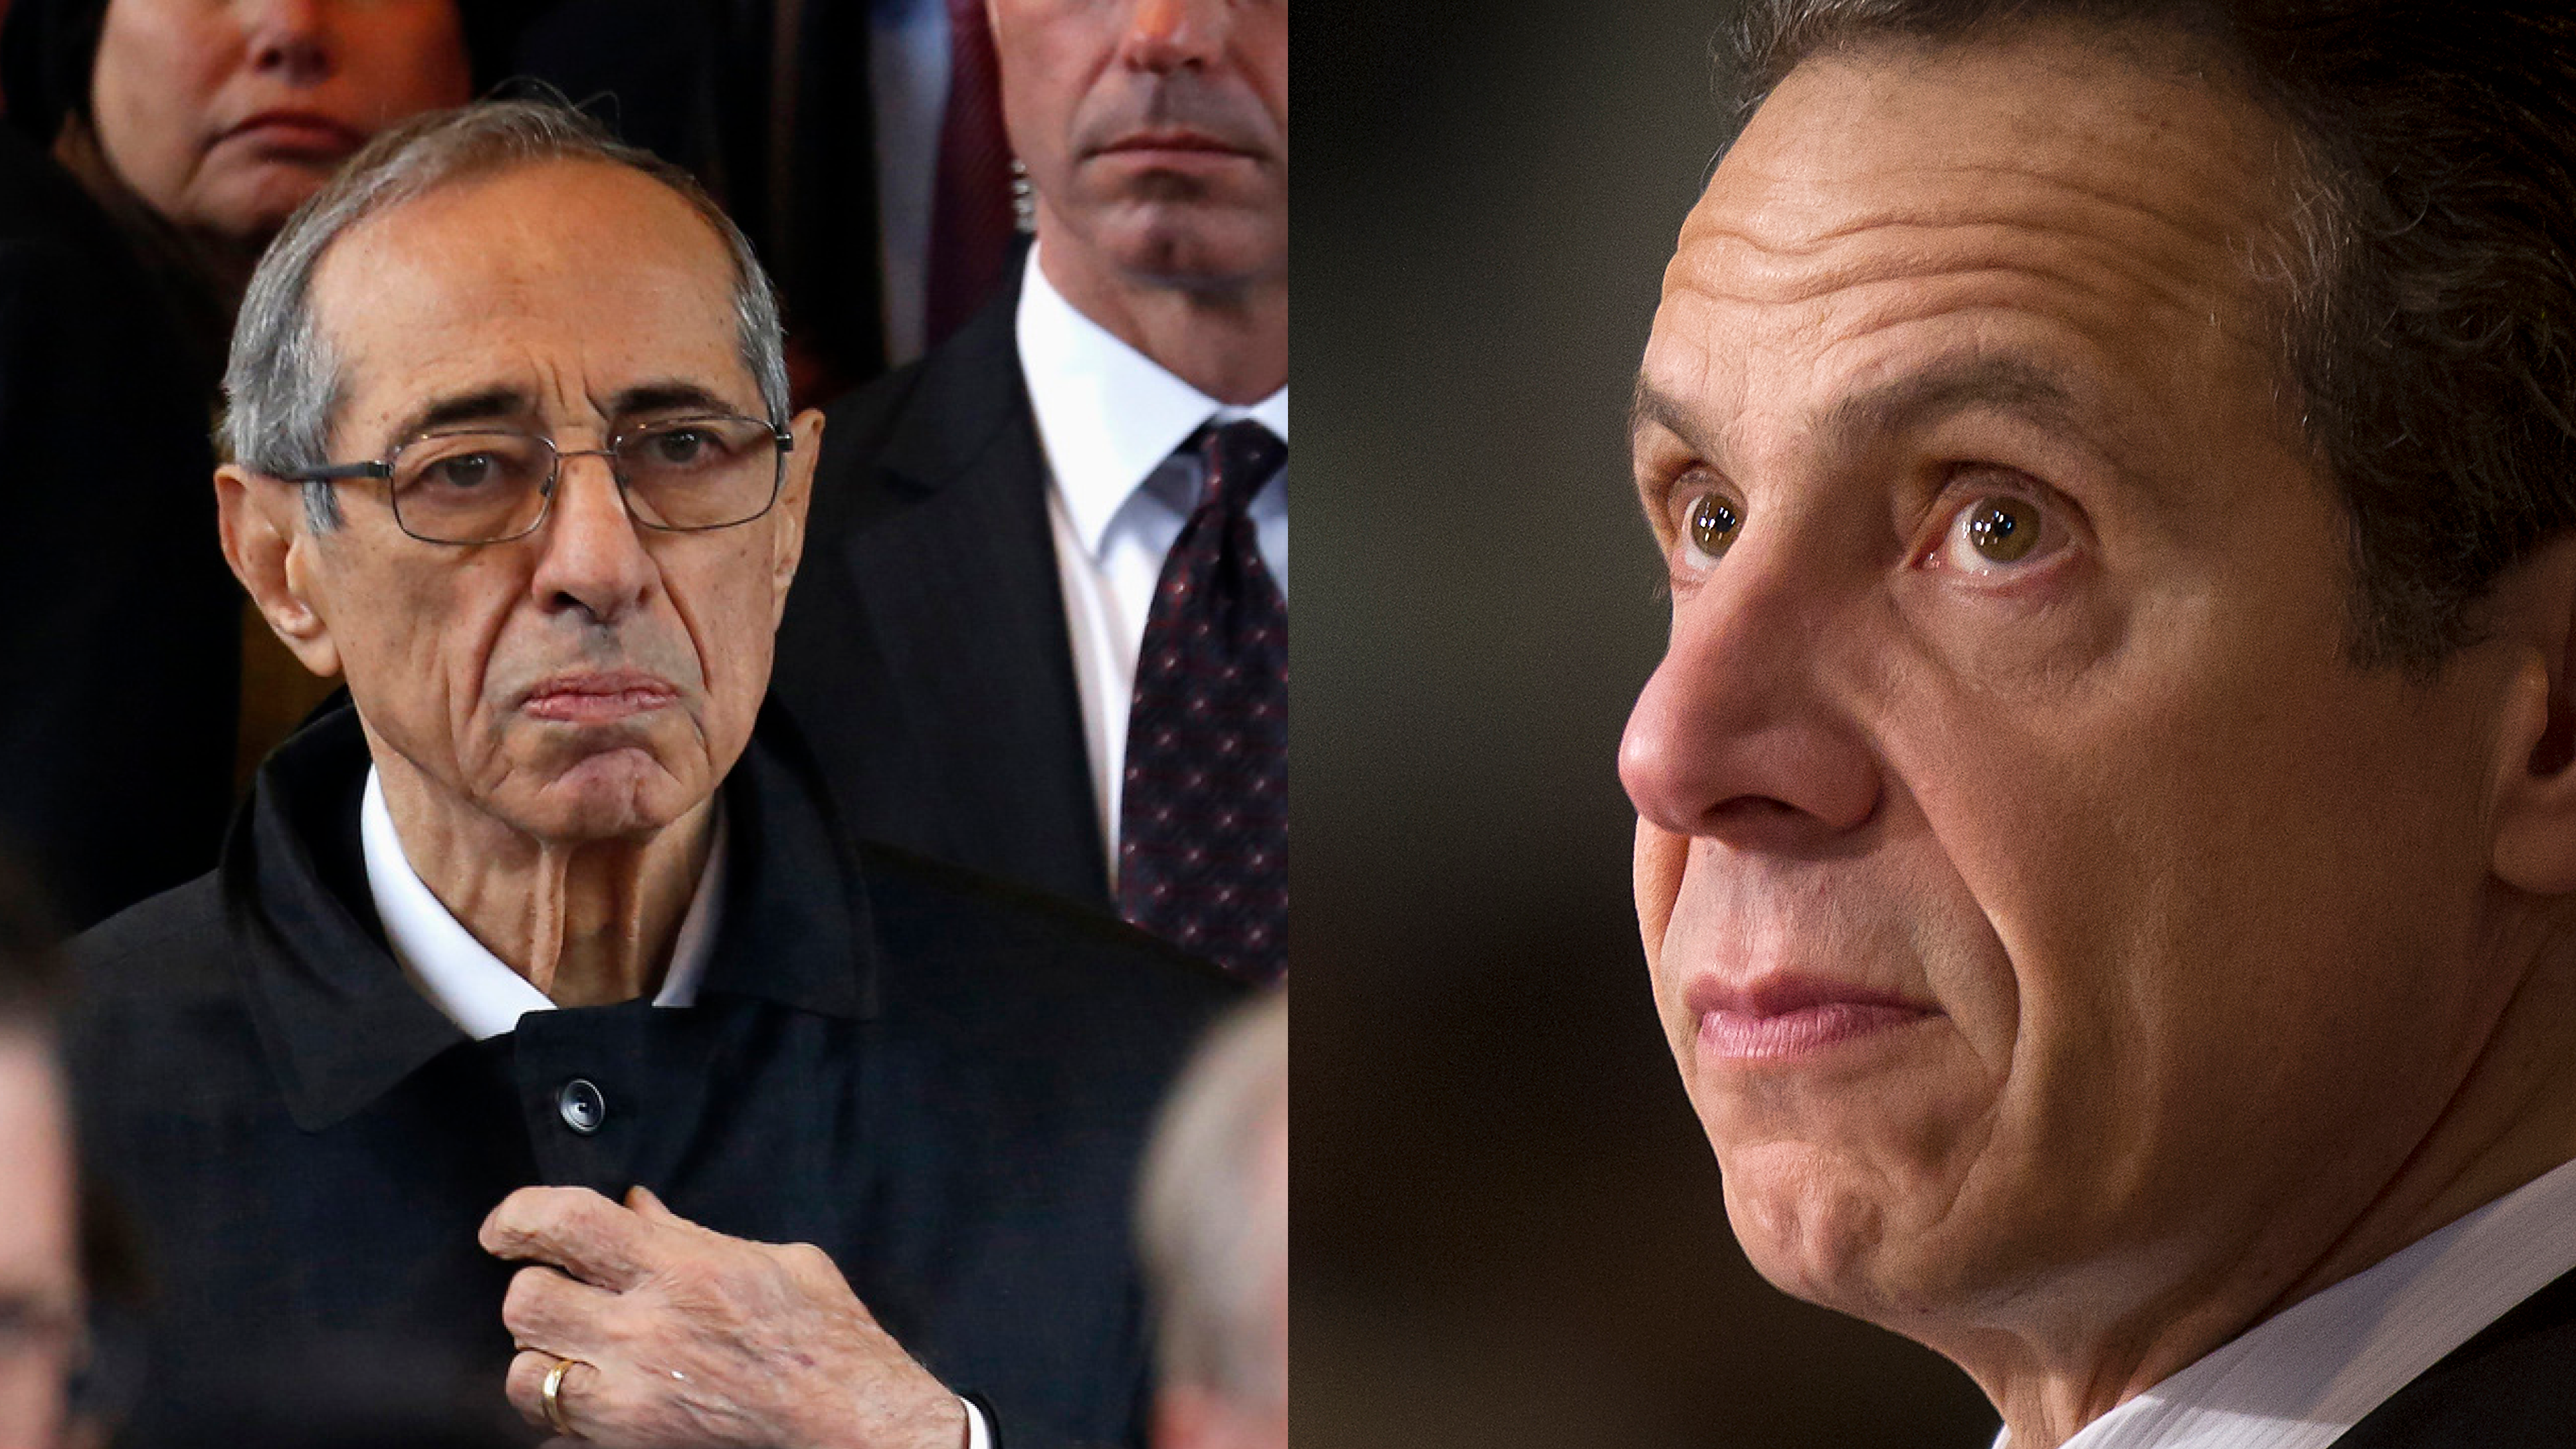 Andrew Cuomo and the sad inheritance of 'personal opposition